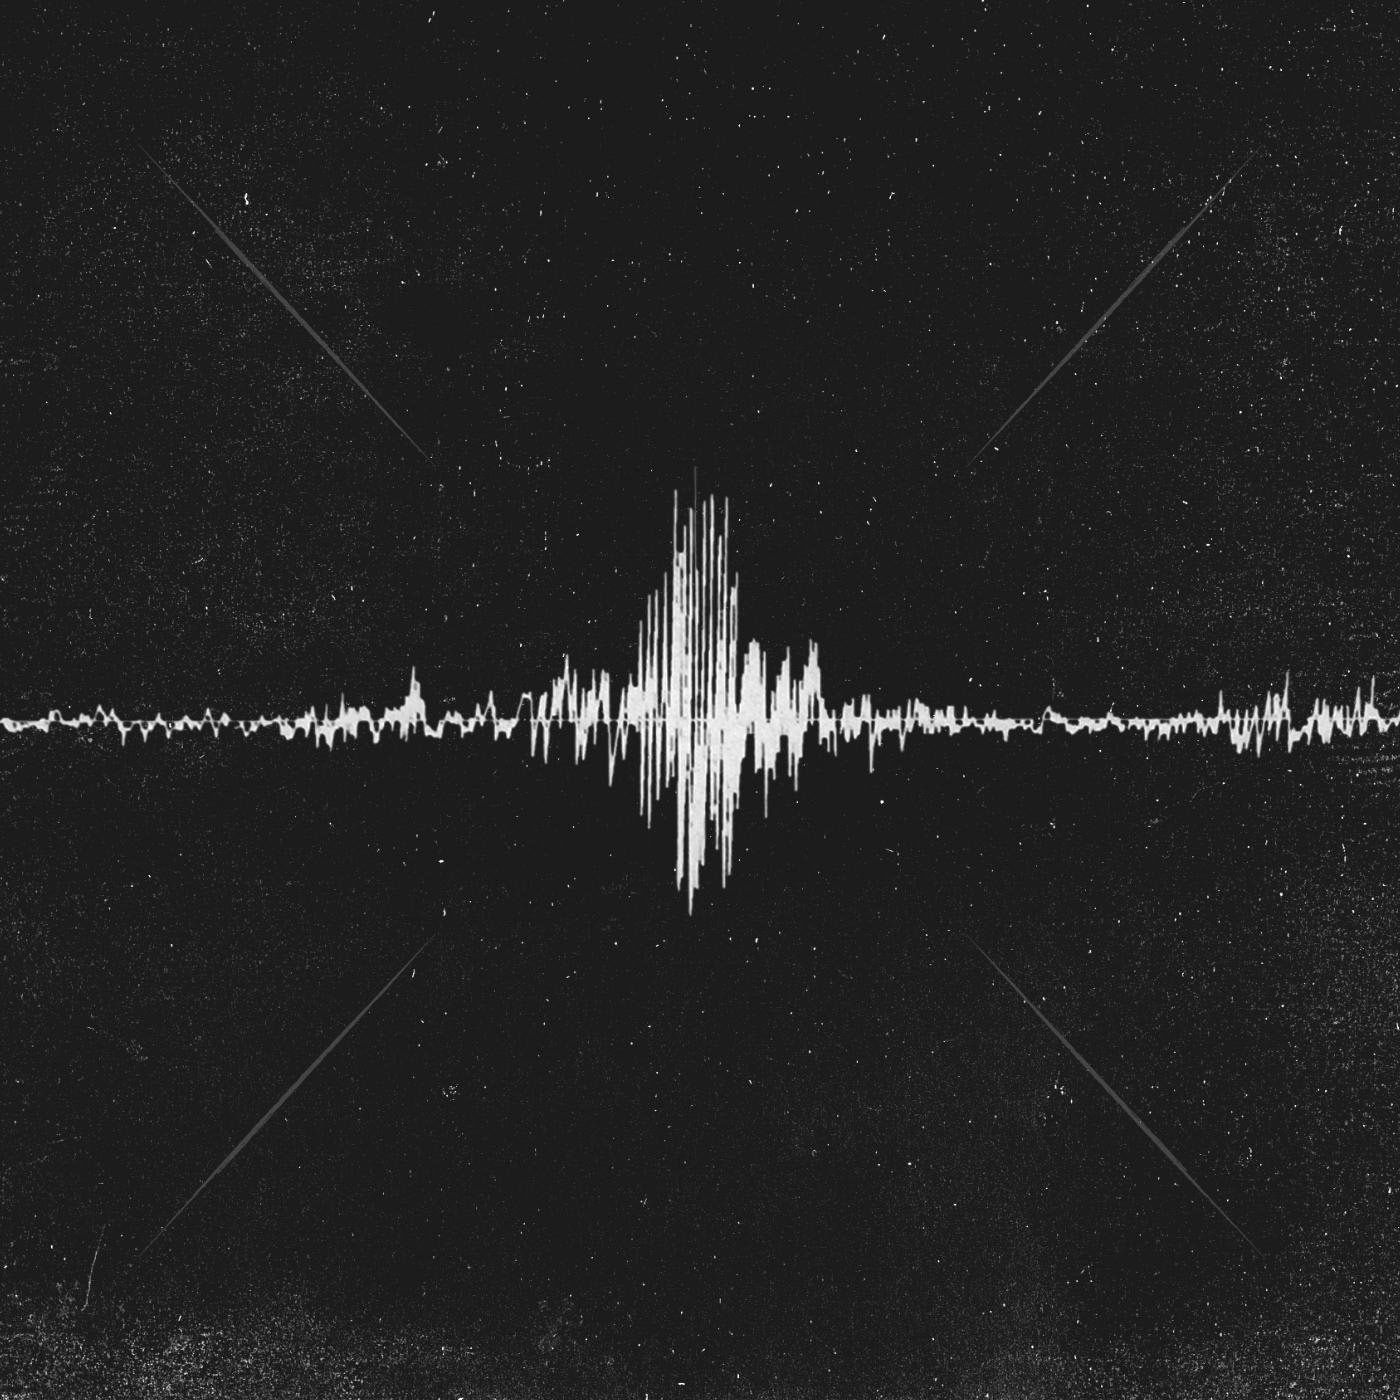 Bethel Music Iphone Wallpaper - Download Best Bethel Music Iphone  Wallpaperfor iPhone Wallpapers inHD. You